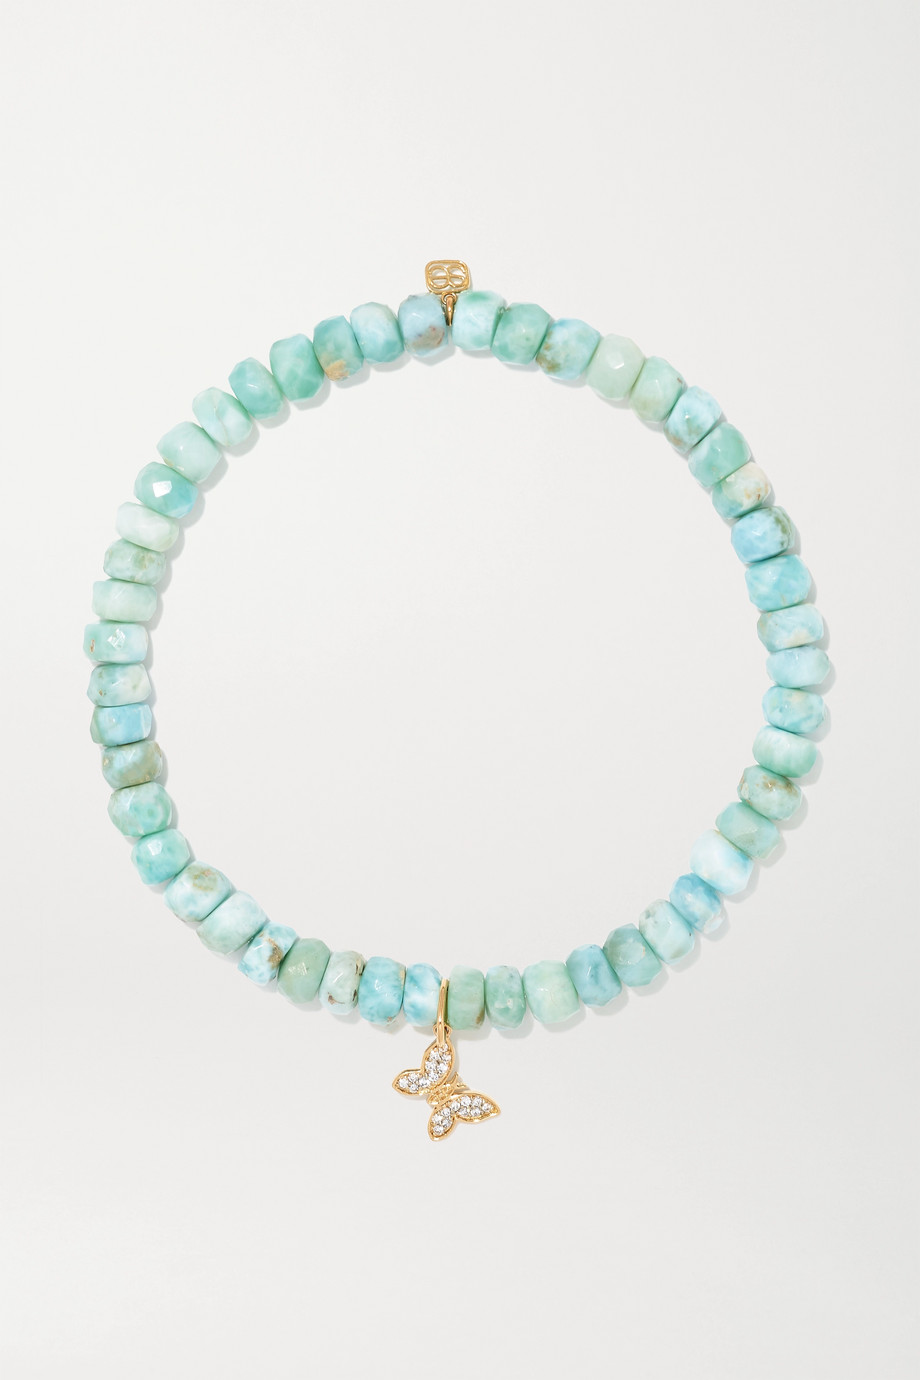 Sydney Evan Tiny Butterfly 14-karat gold, diamond and larimar bracelet